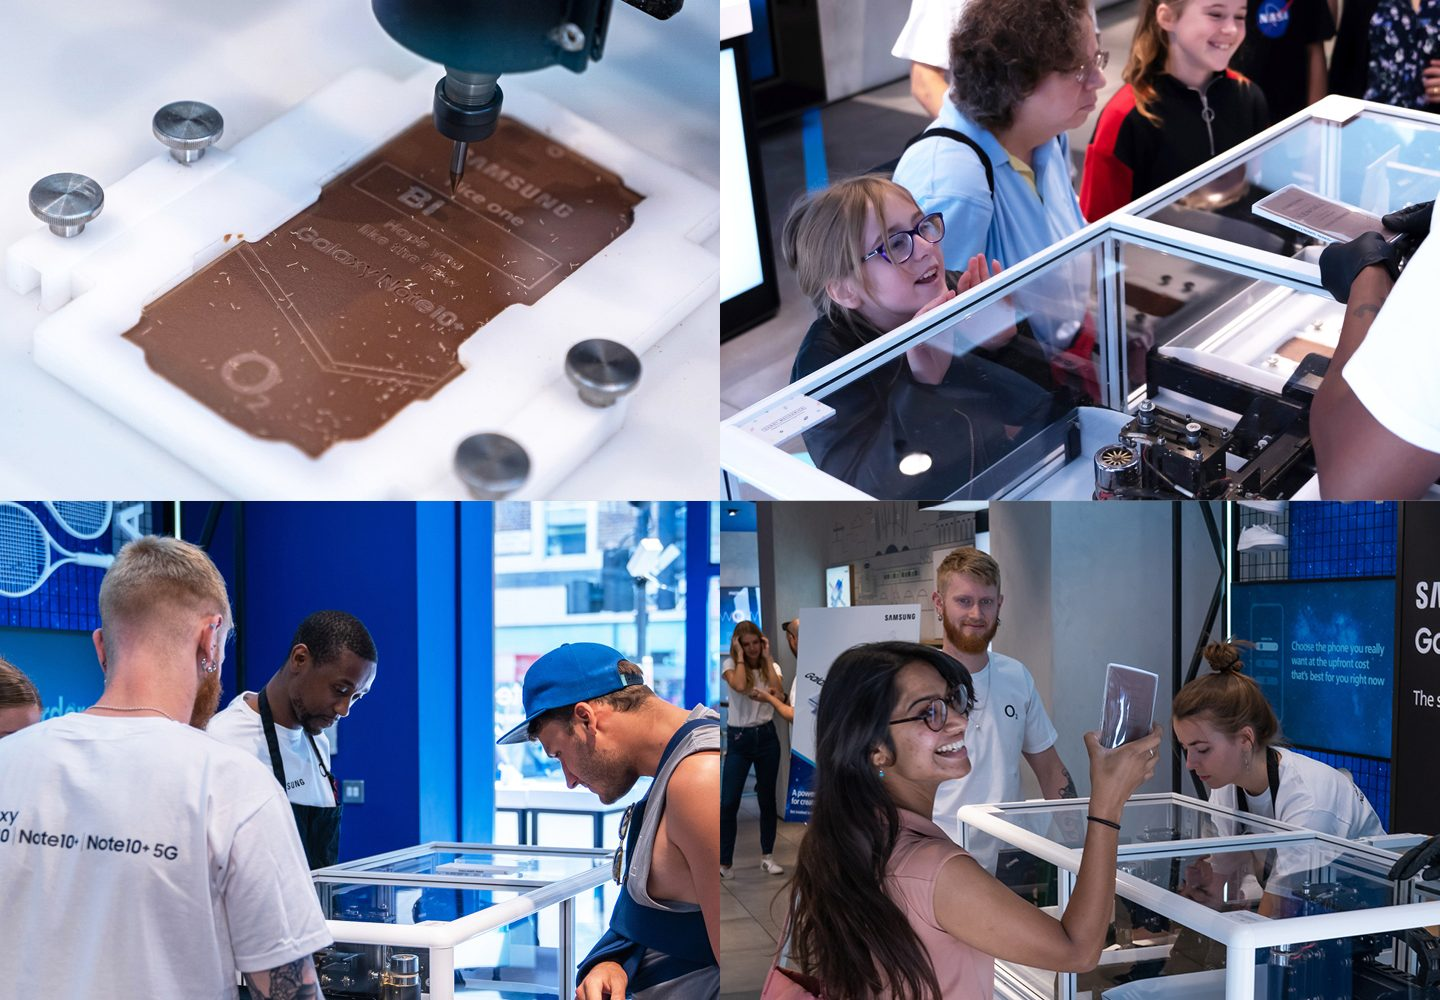 photo montage of chocolate engraving of Samsung Note10